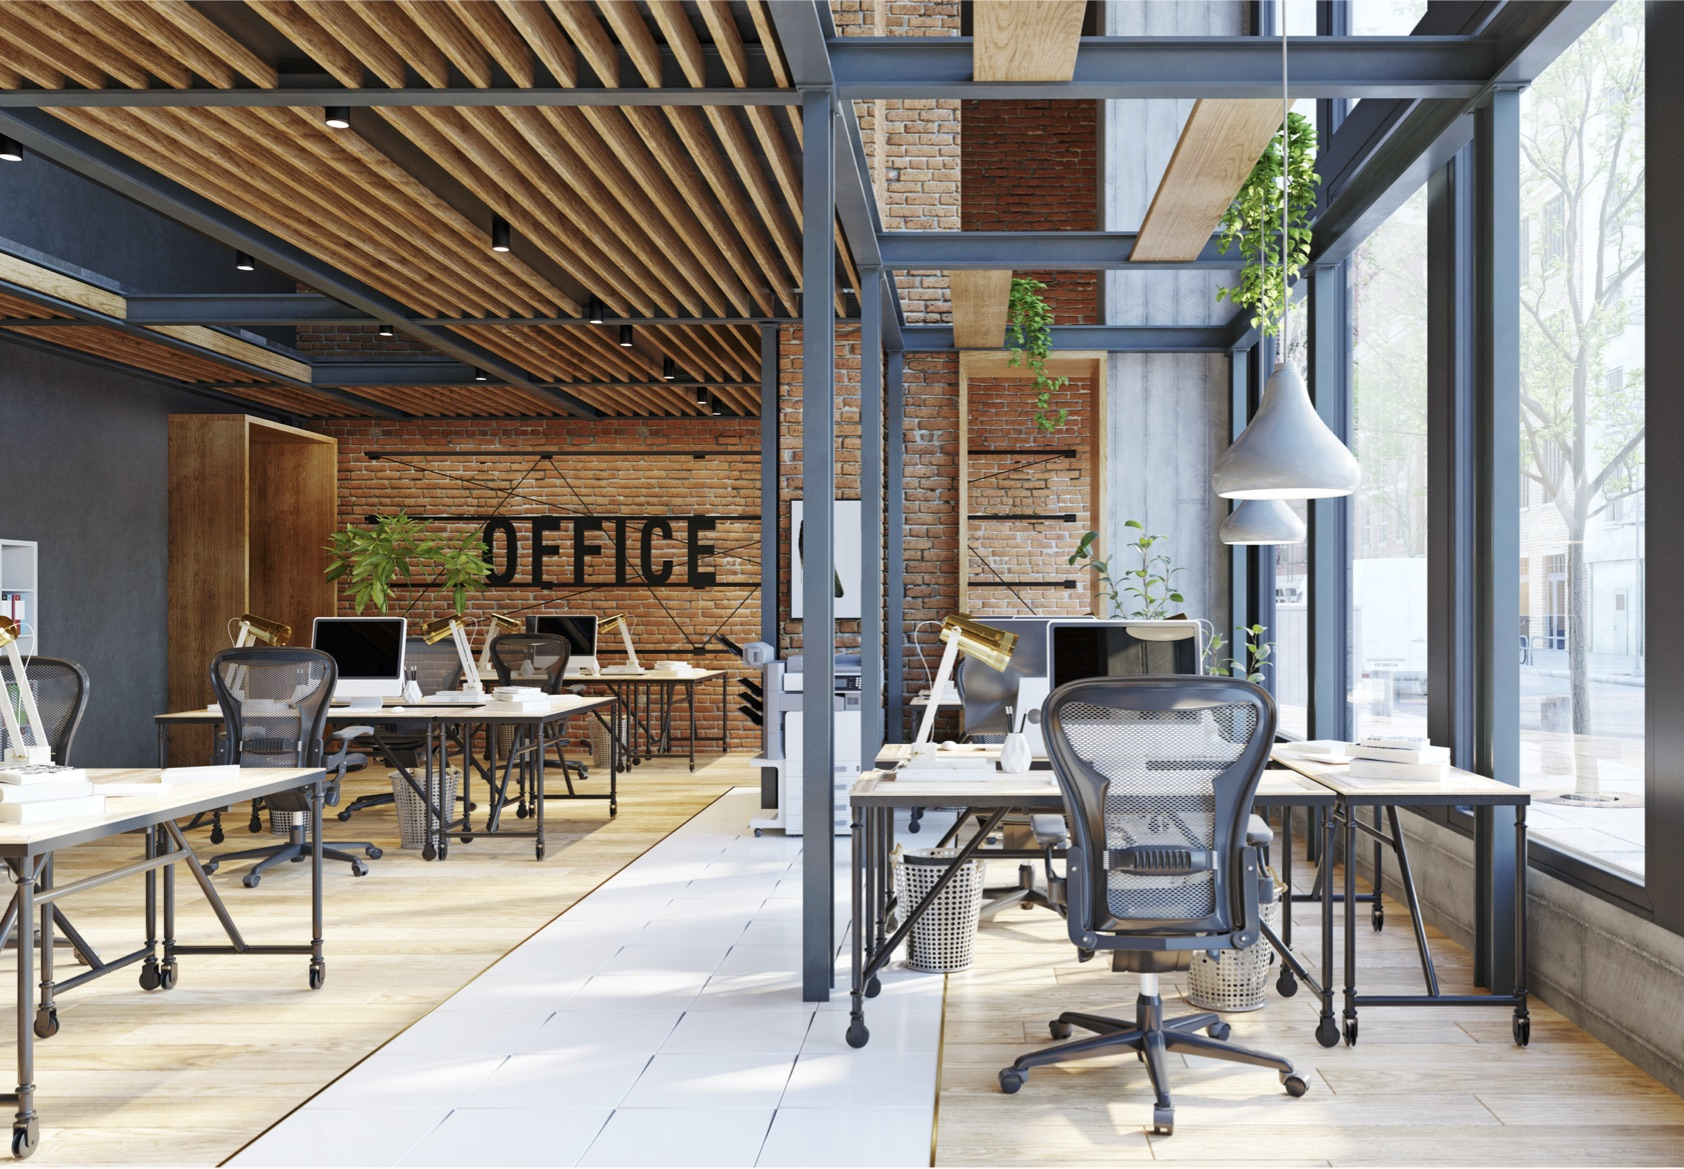 commercial interior design, workspace, office interior design